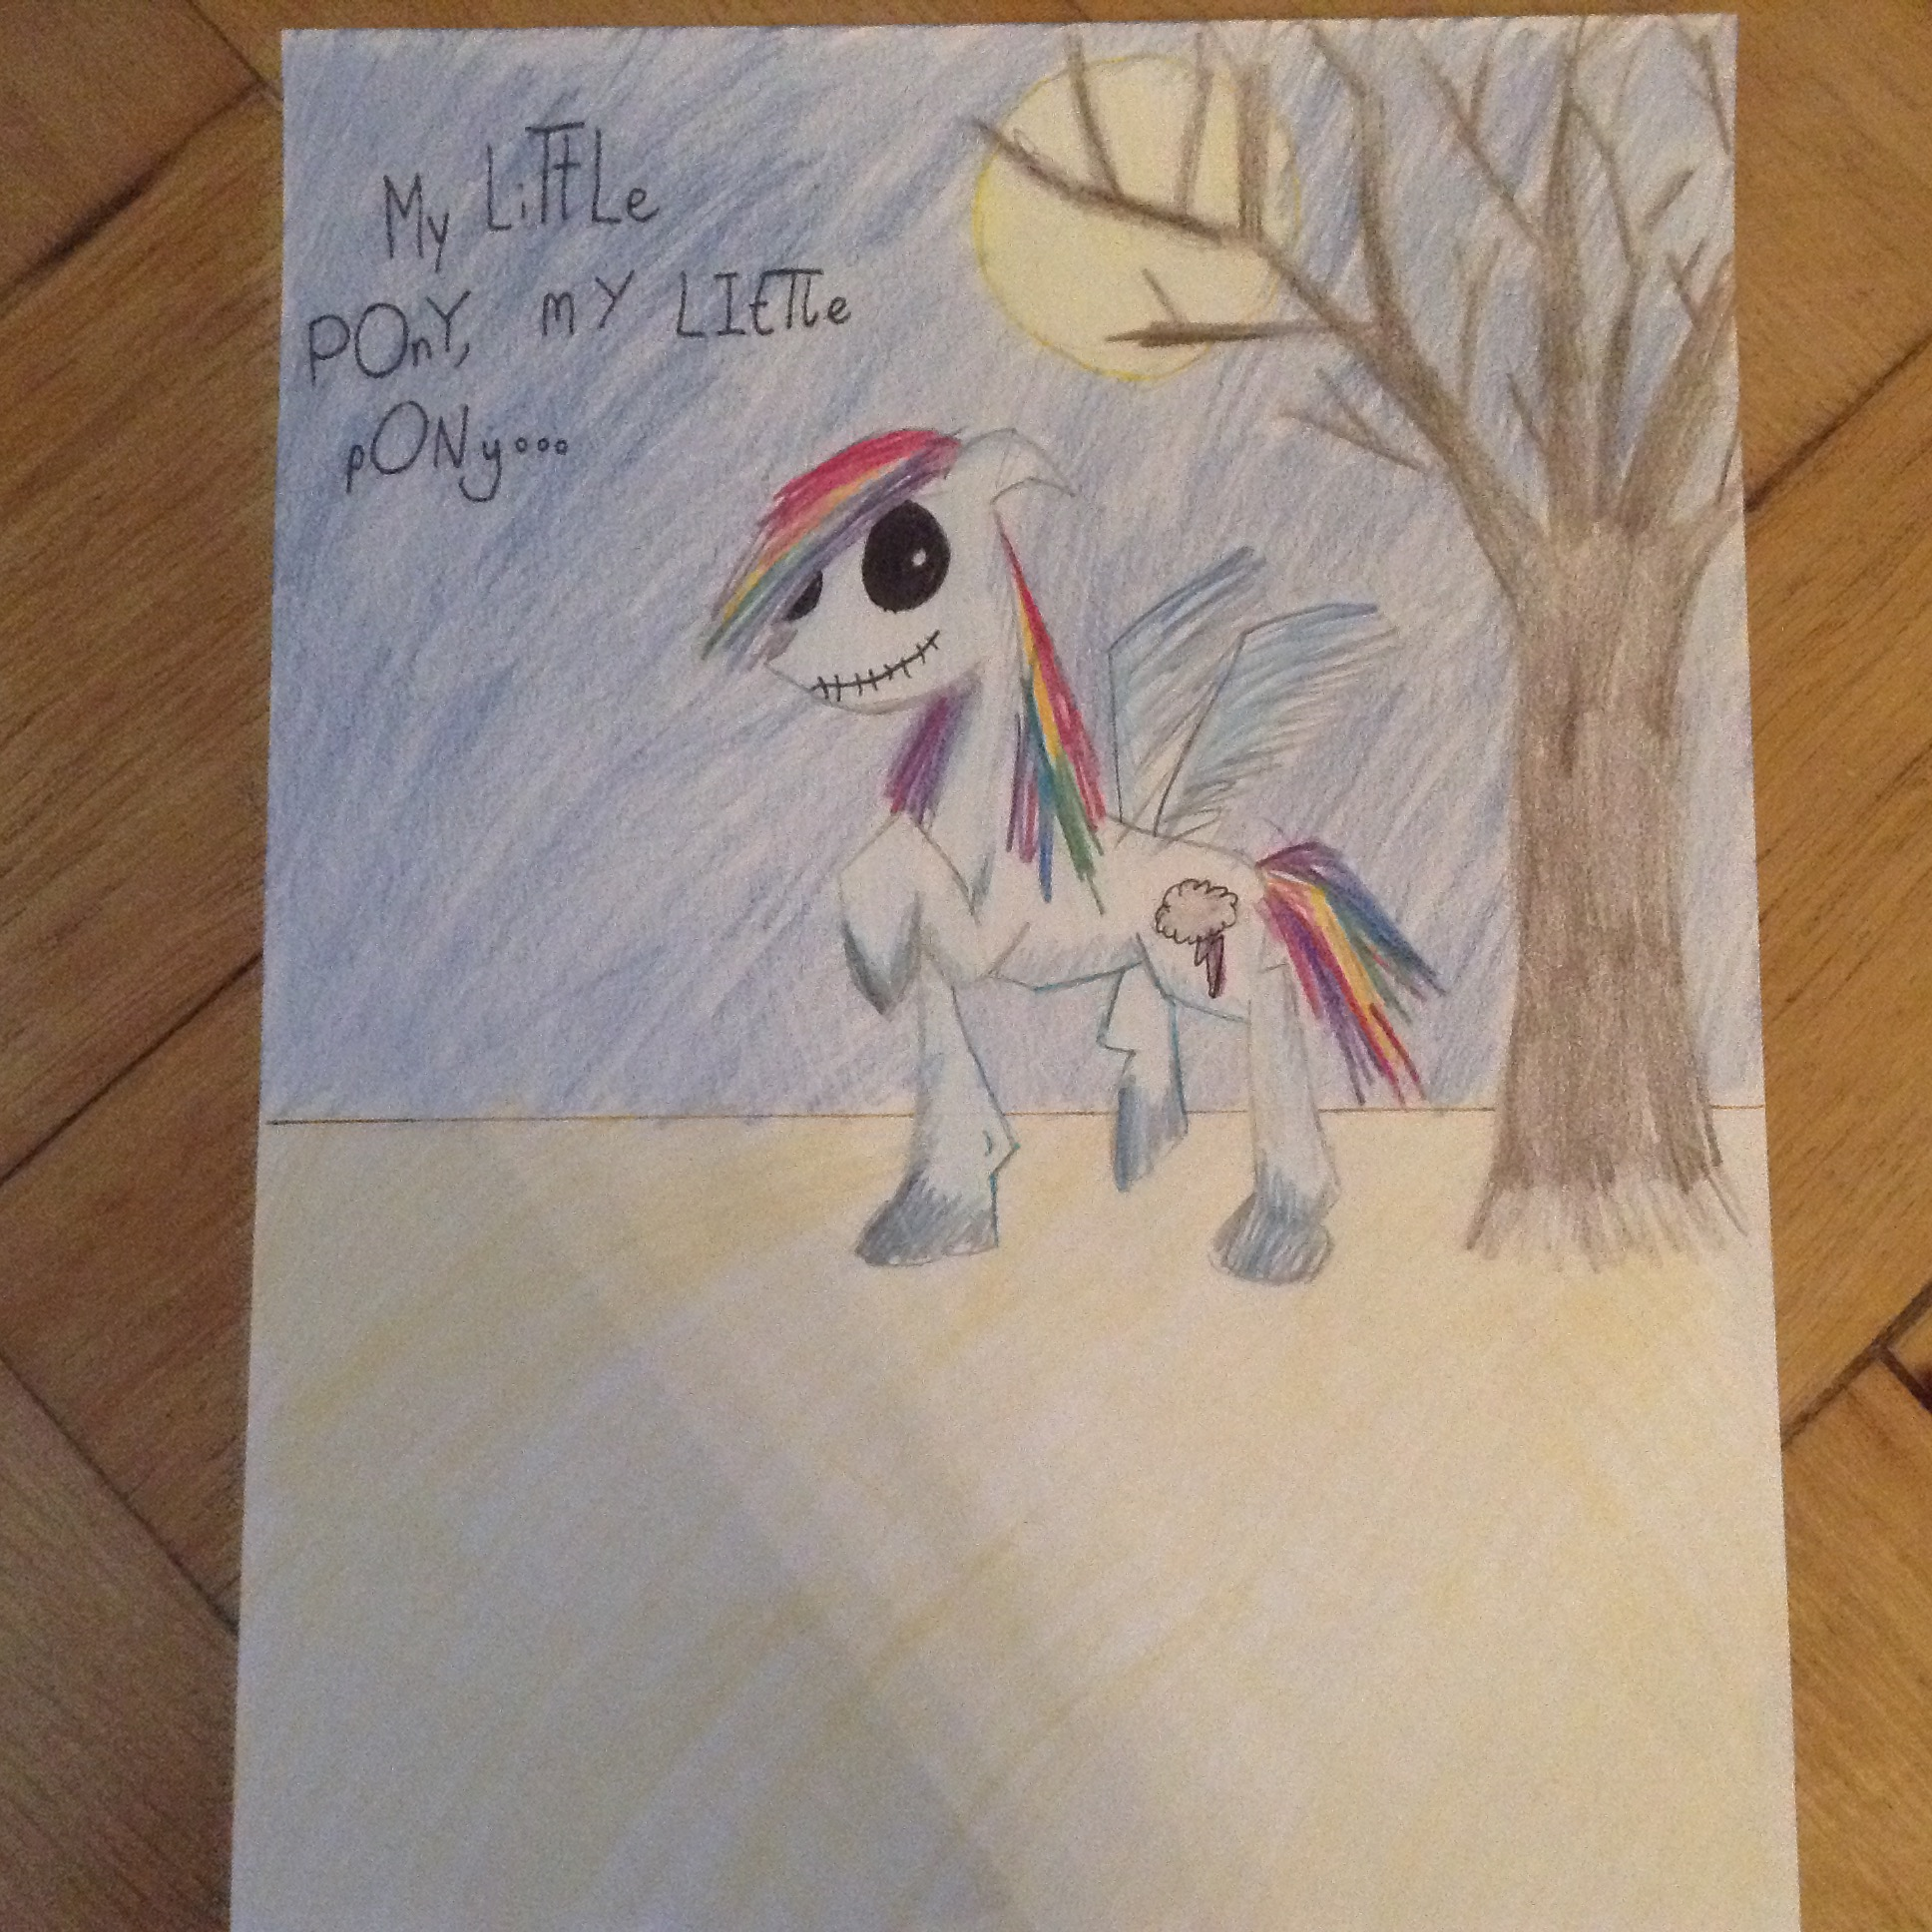 Rainbow Dash from My Little Pony in the style of Tim Burton